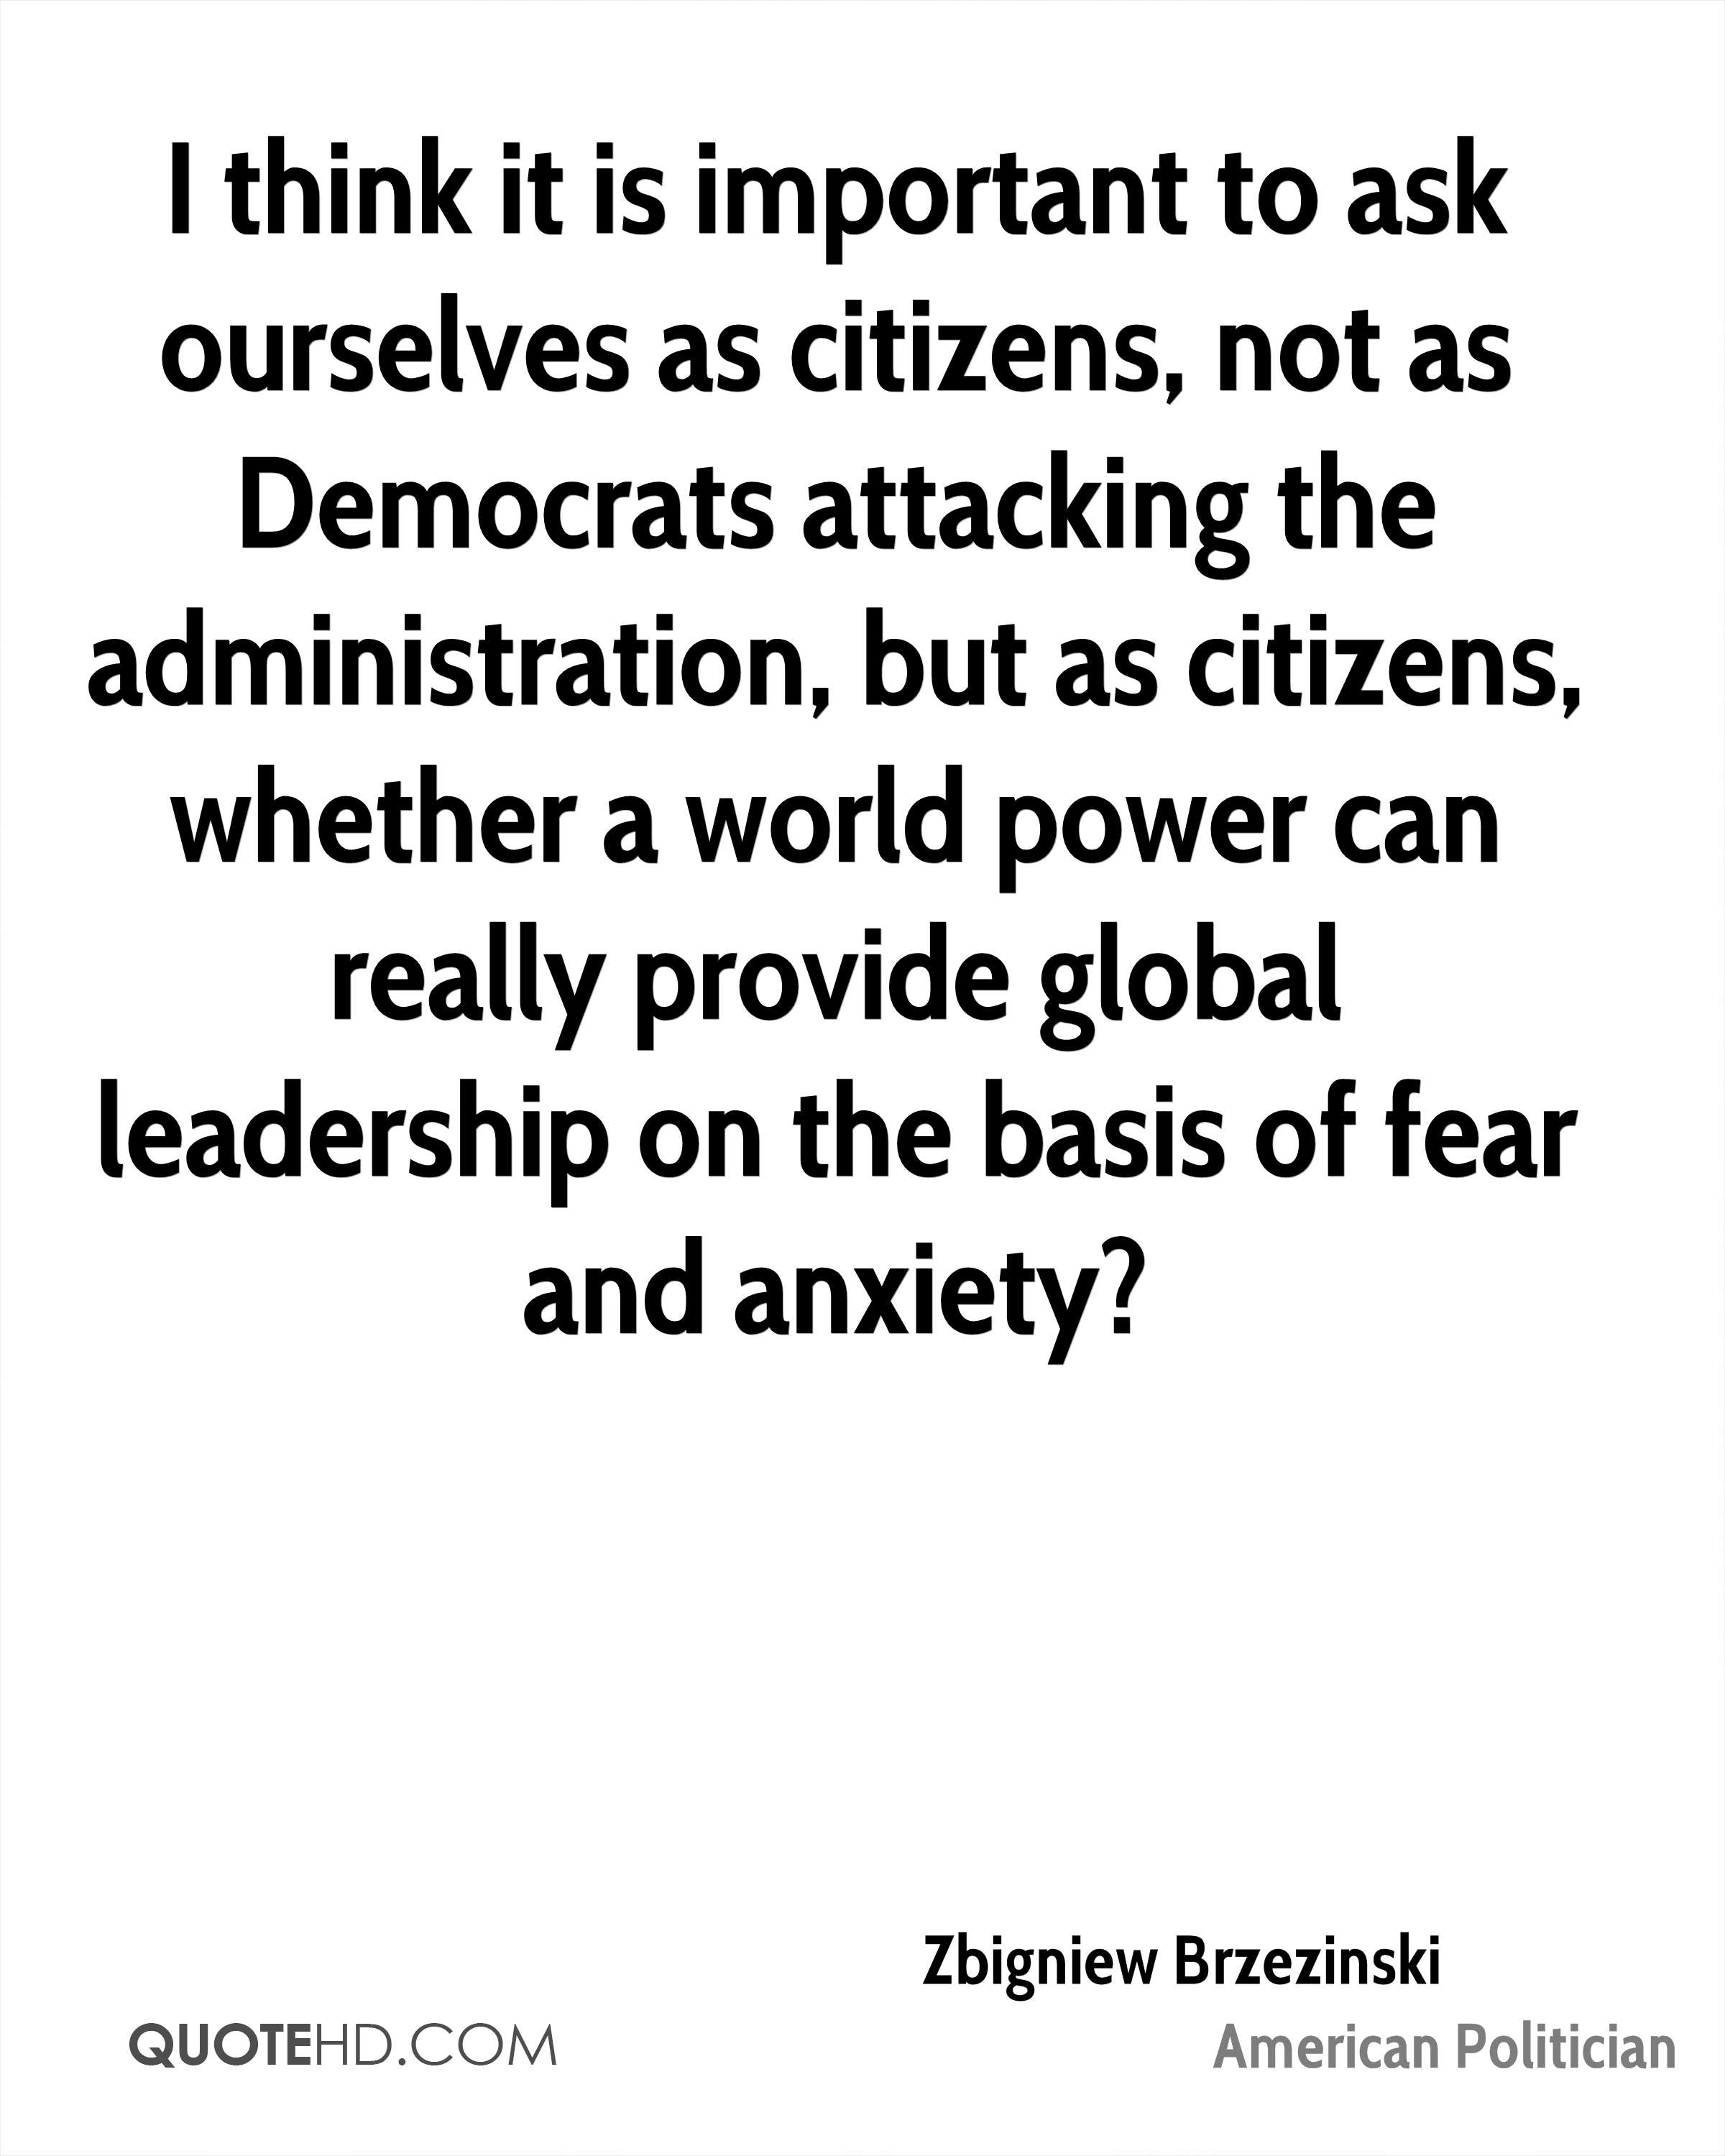 I think it is important to ask ourselves as citizens, not as Democrats attacking the administration, but as citizens, whether a world power can really provide global leadership on the basis of fear and anxiety?